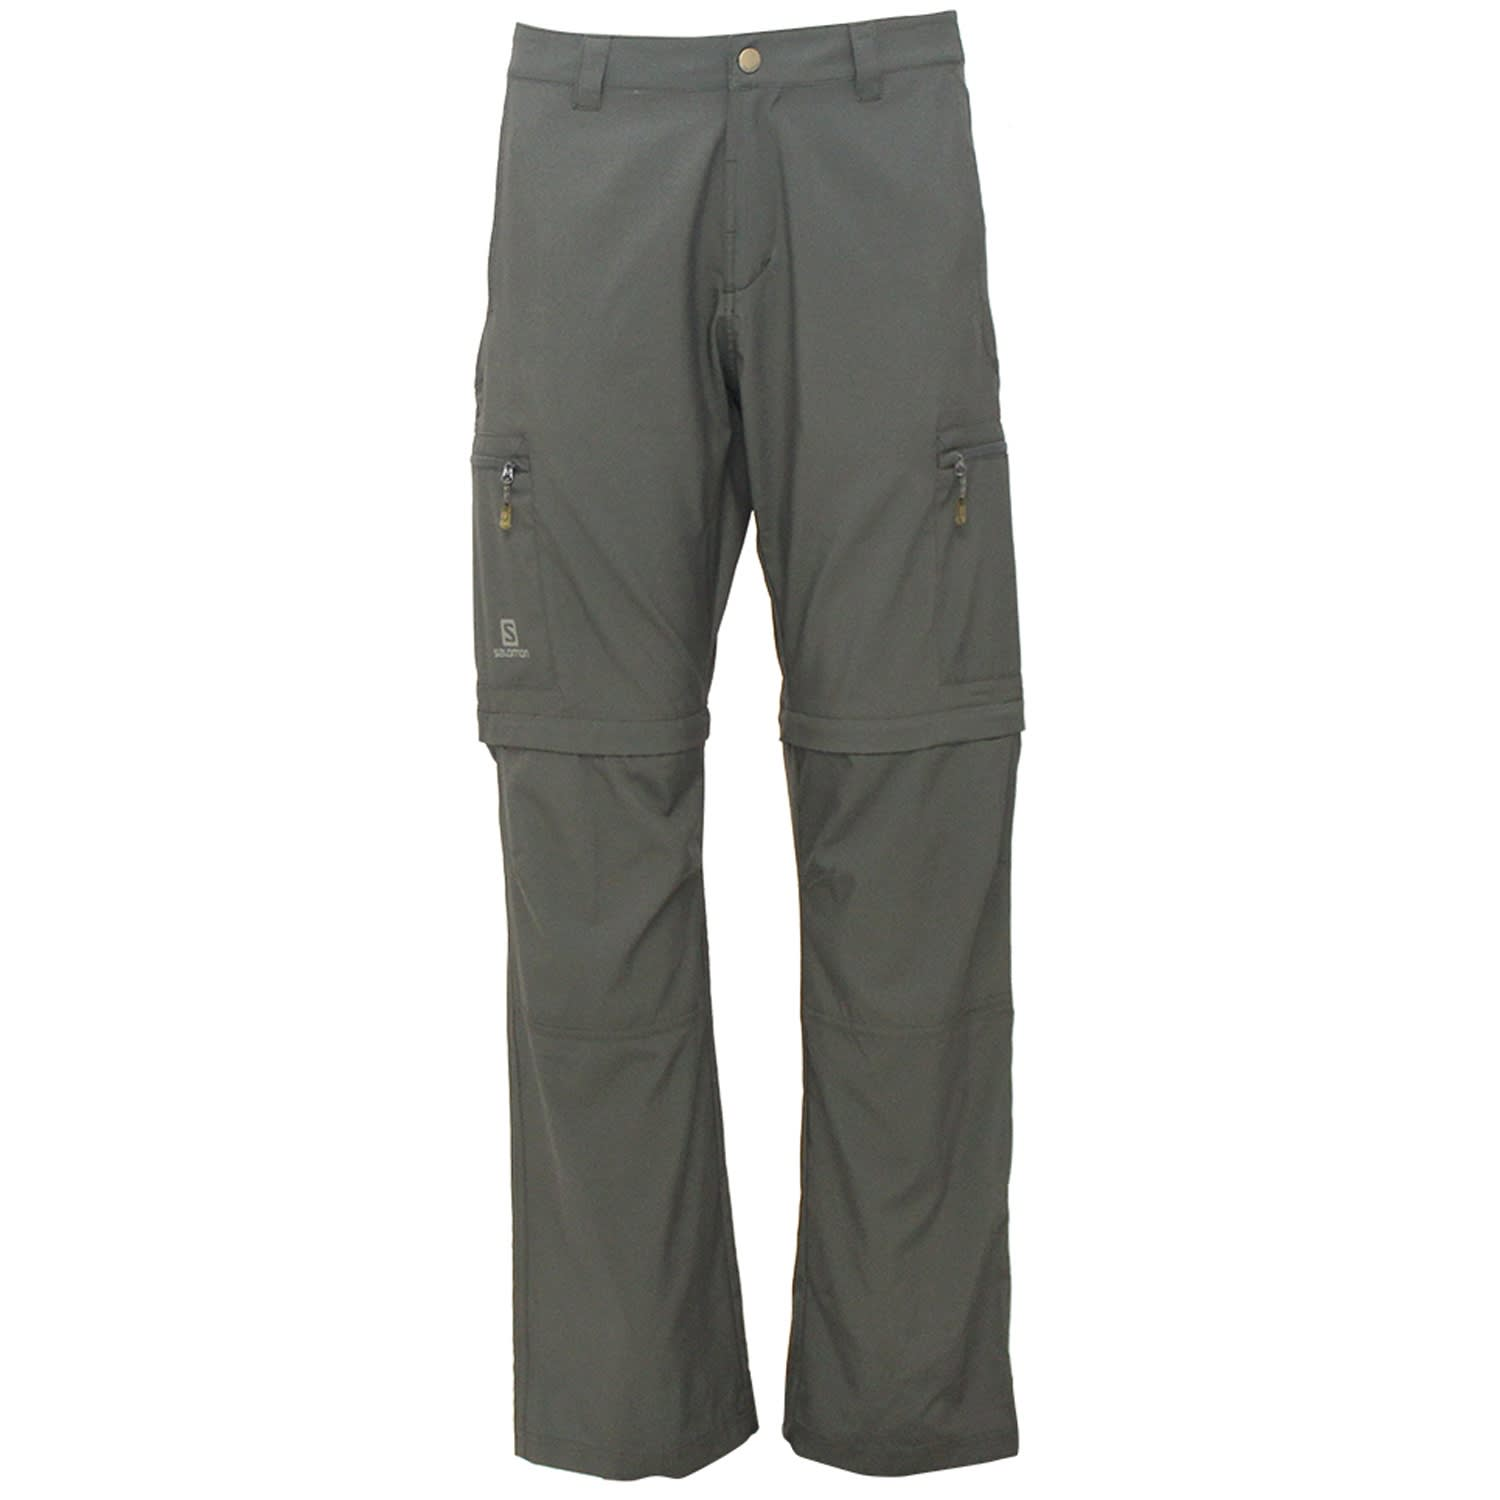 Salomon Men's Quest II ZO Pants